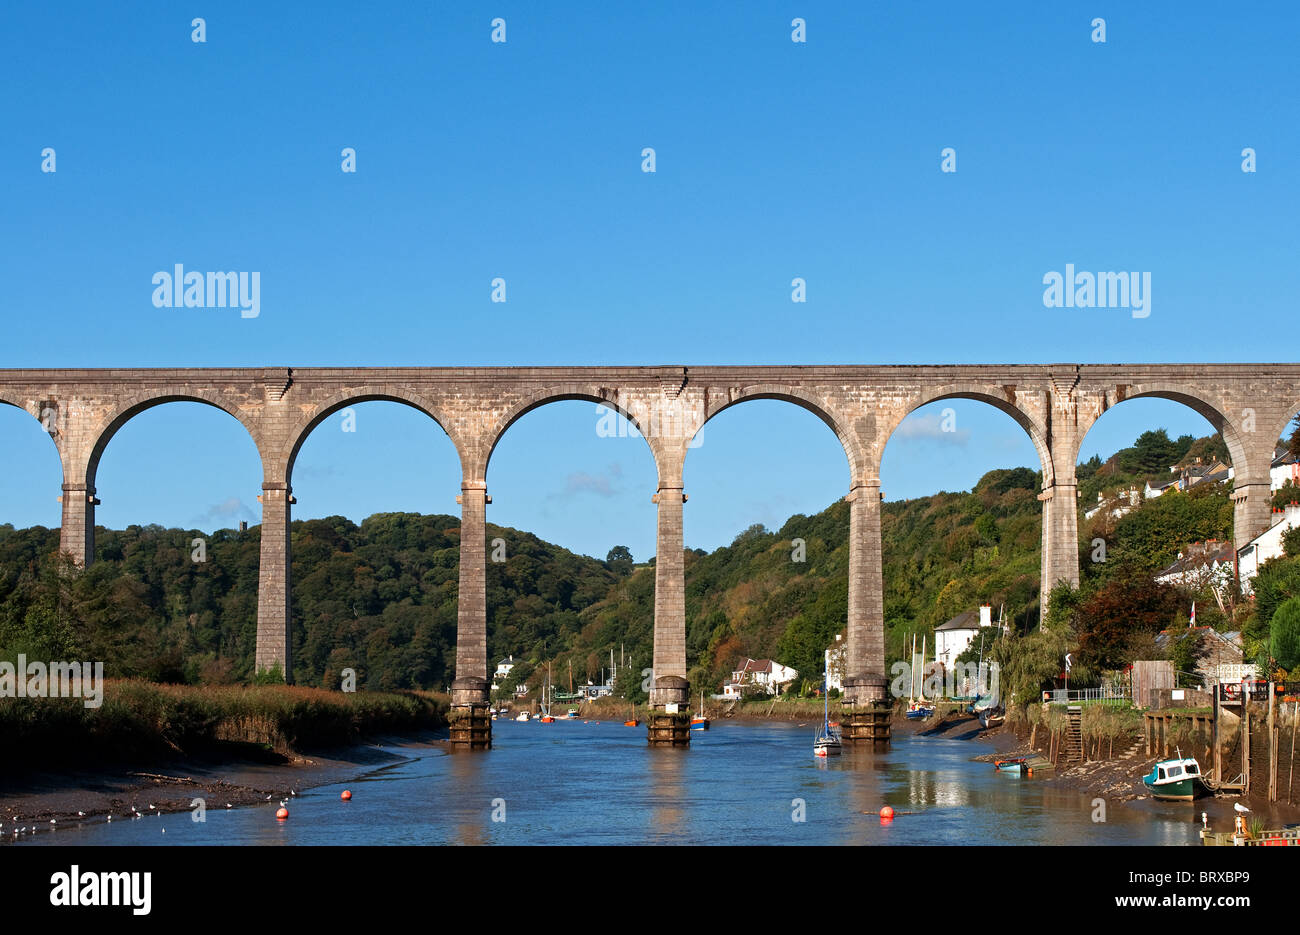 the calstock viaduct, a railway bridge that connects cornwall with devon - Stock Image